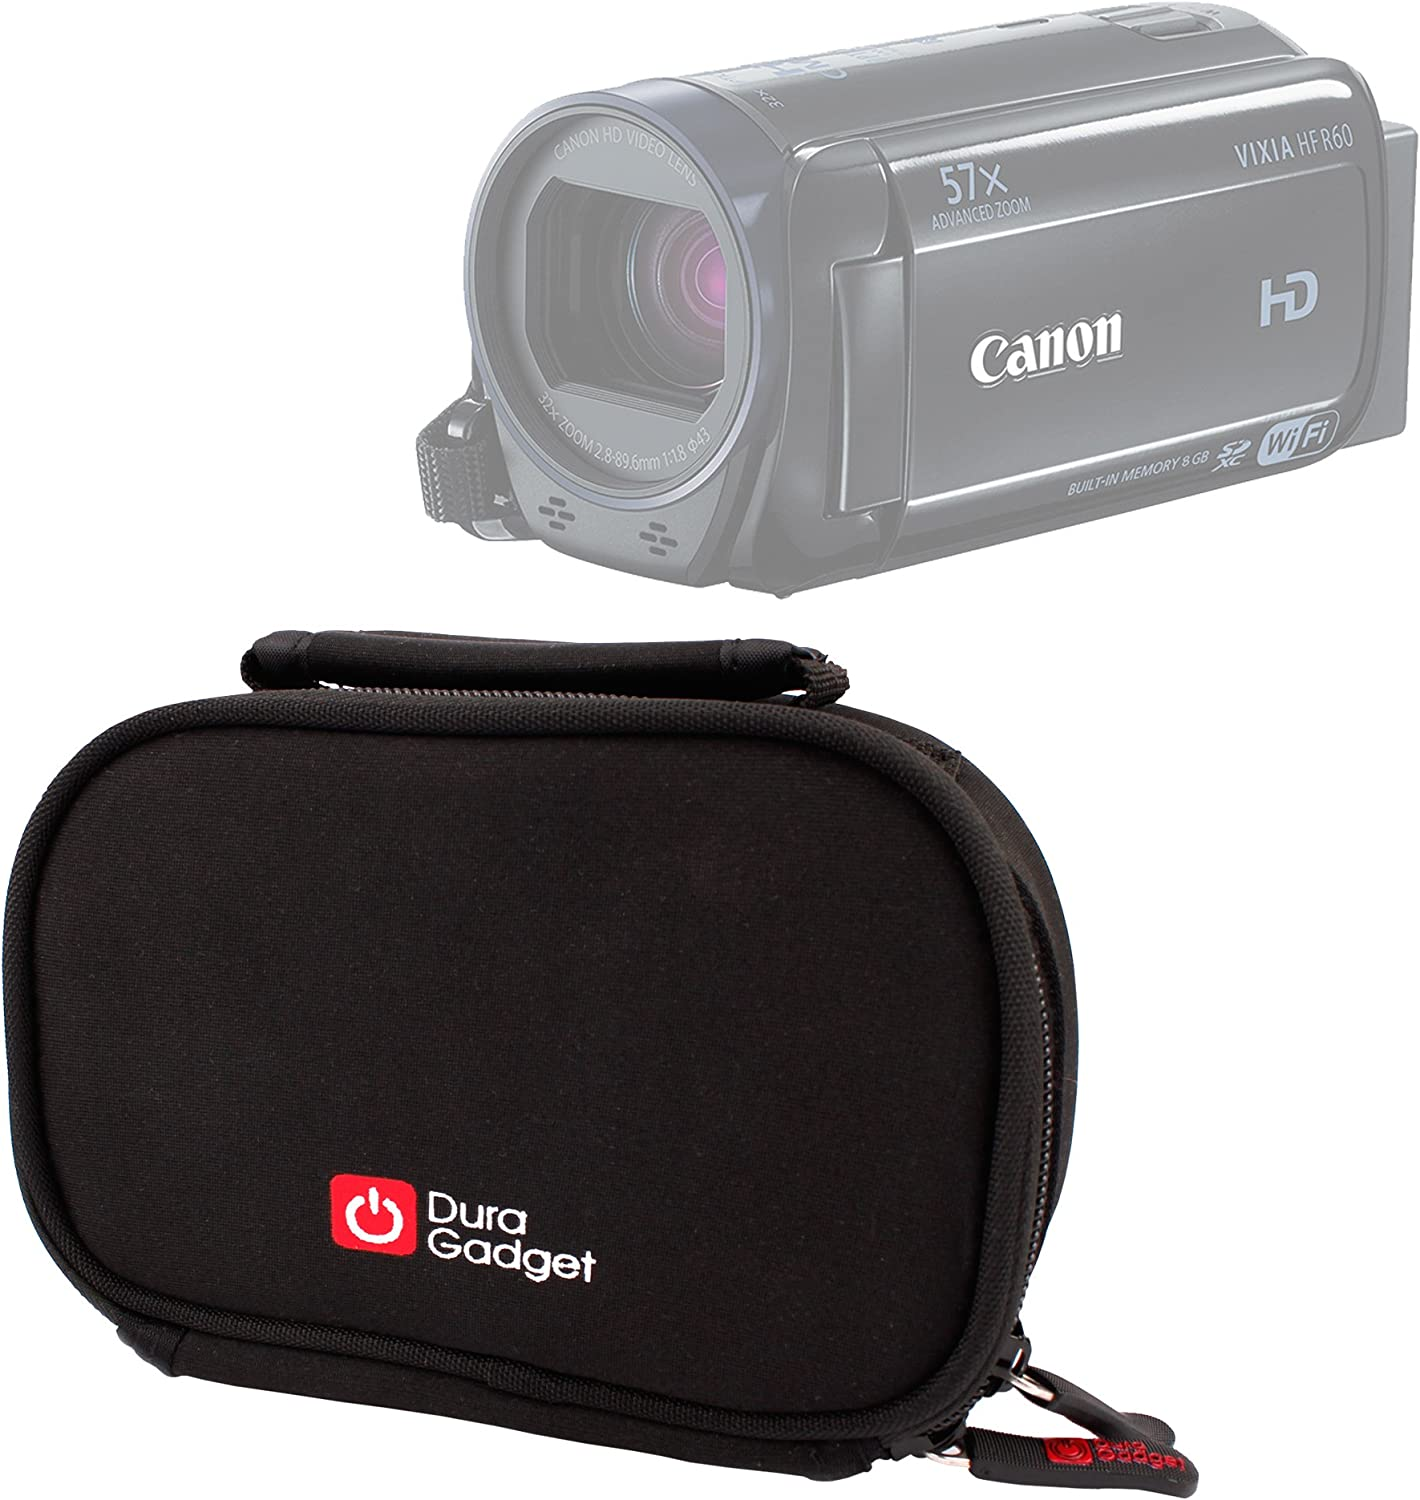 DURAGADGET Shock-Absorbing & Ultra-Portable Neoprene Camcorder Case in Black for The New Canon VIXIA HF R60 / VIXIA HF R62 / VIXIA HF R600